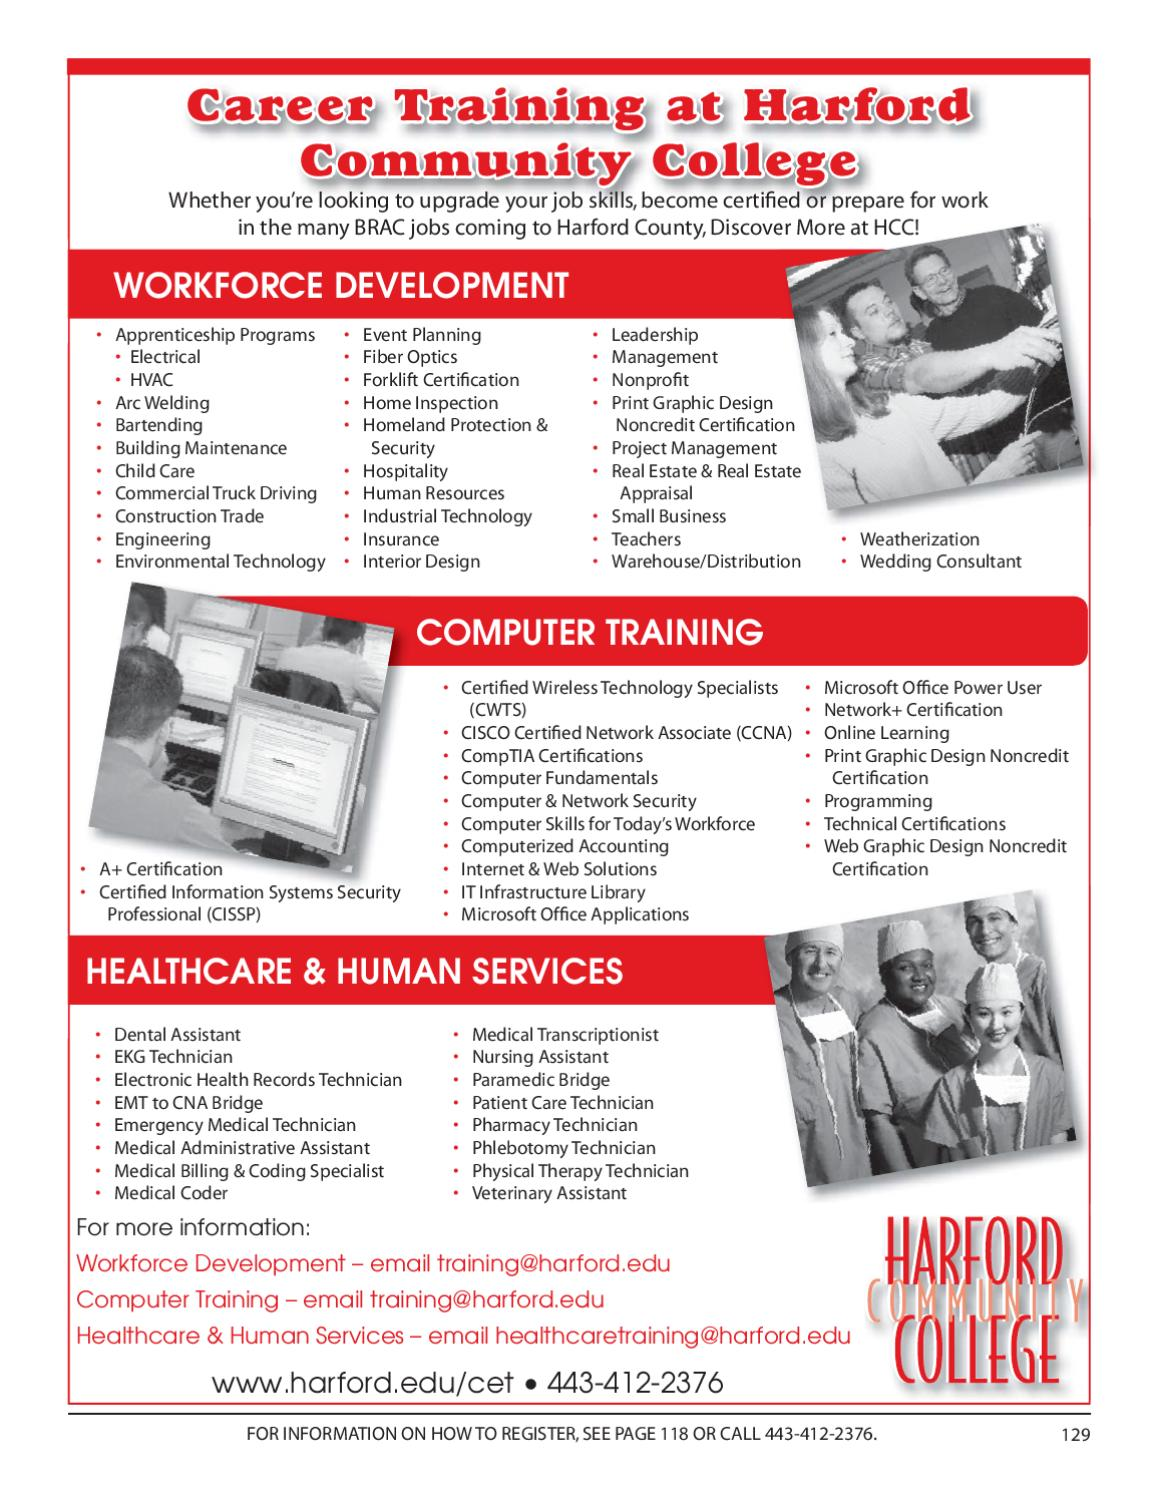 Hcc Fall Noncredit Schedule By Harford Community College Issuu